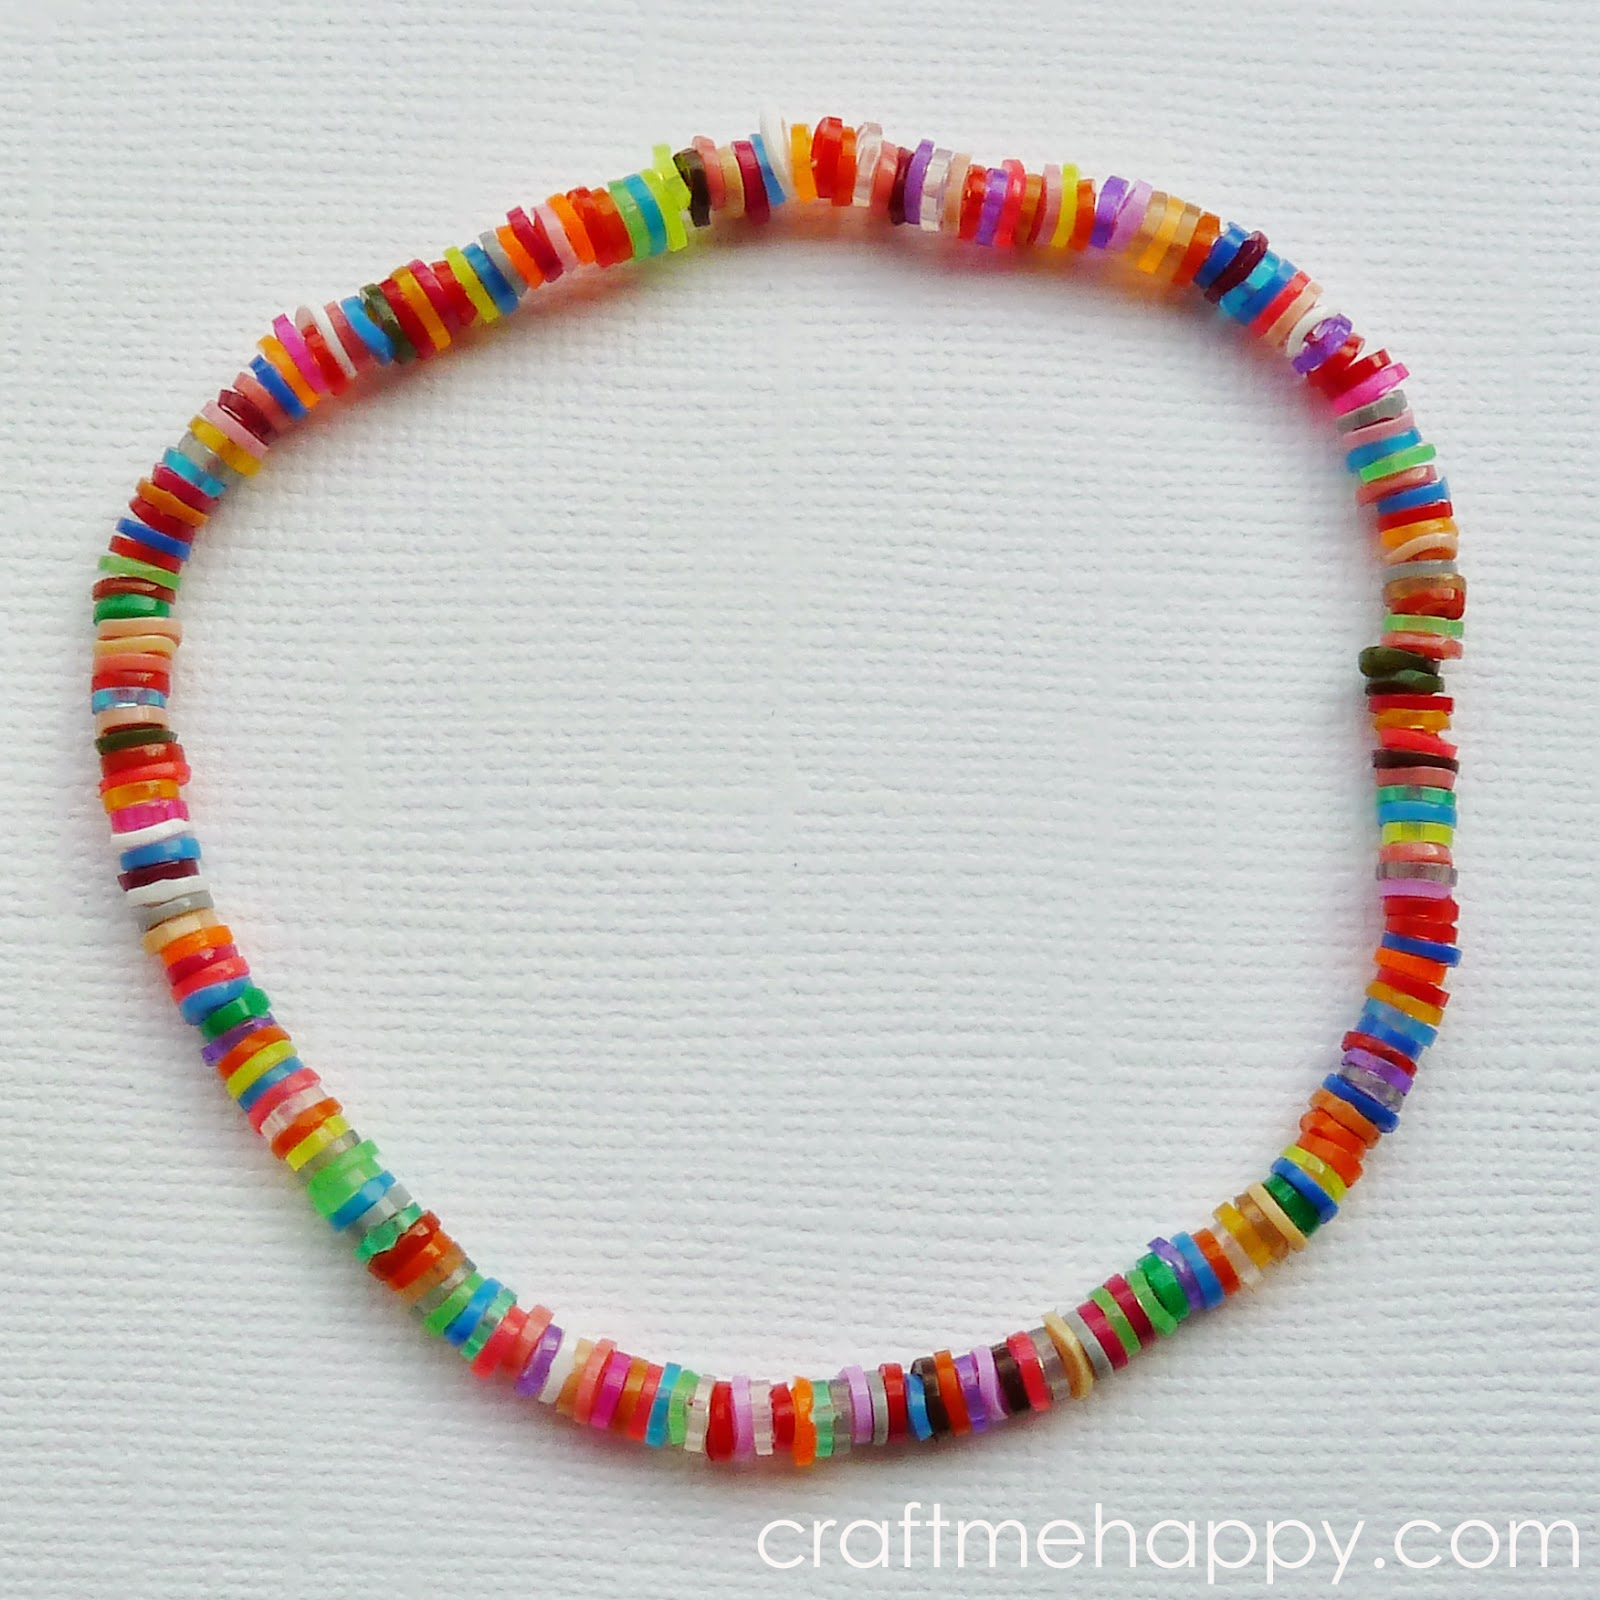 pin michaelsmakers bead bracelet bracelets kid craft the mama perler diy to how paper